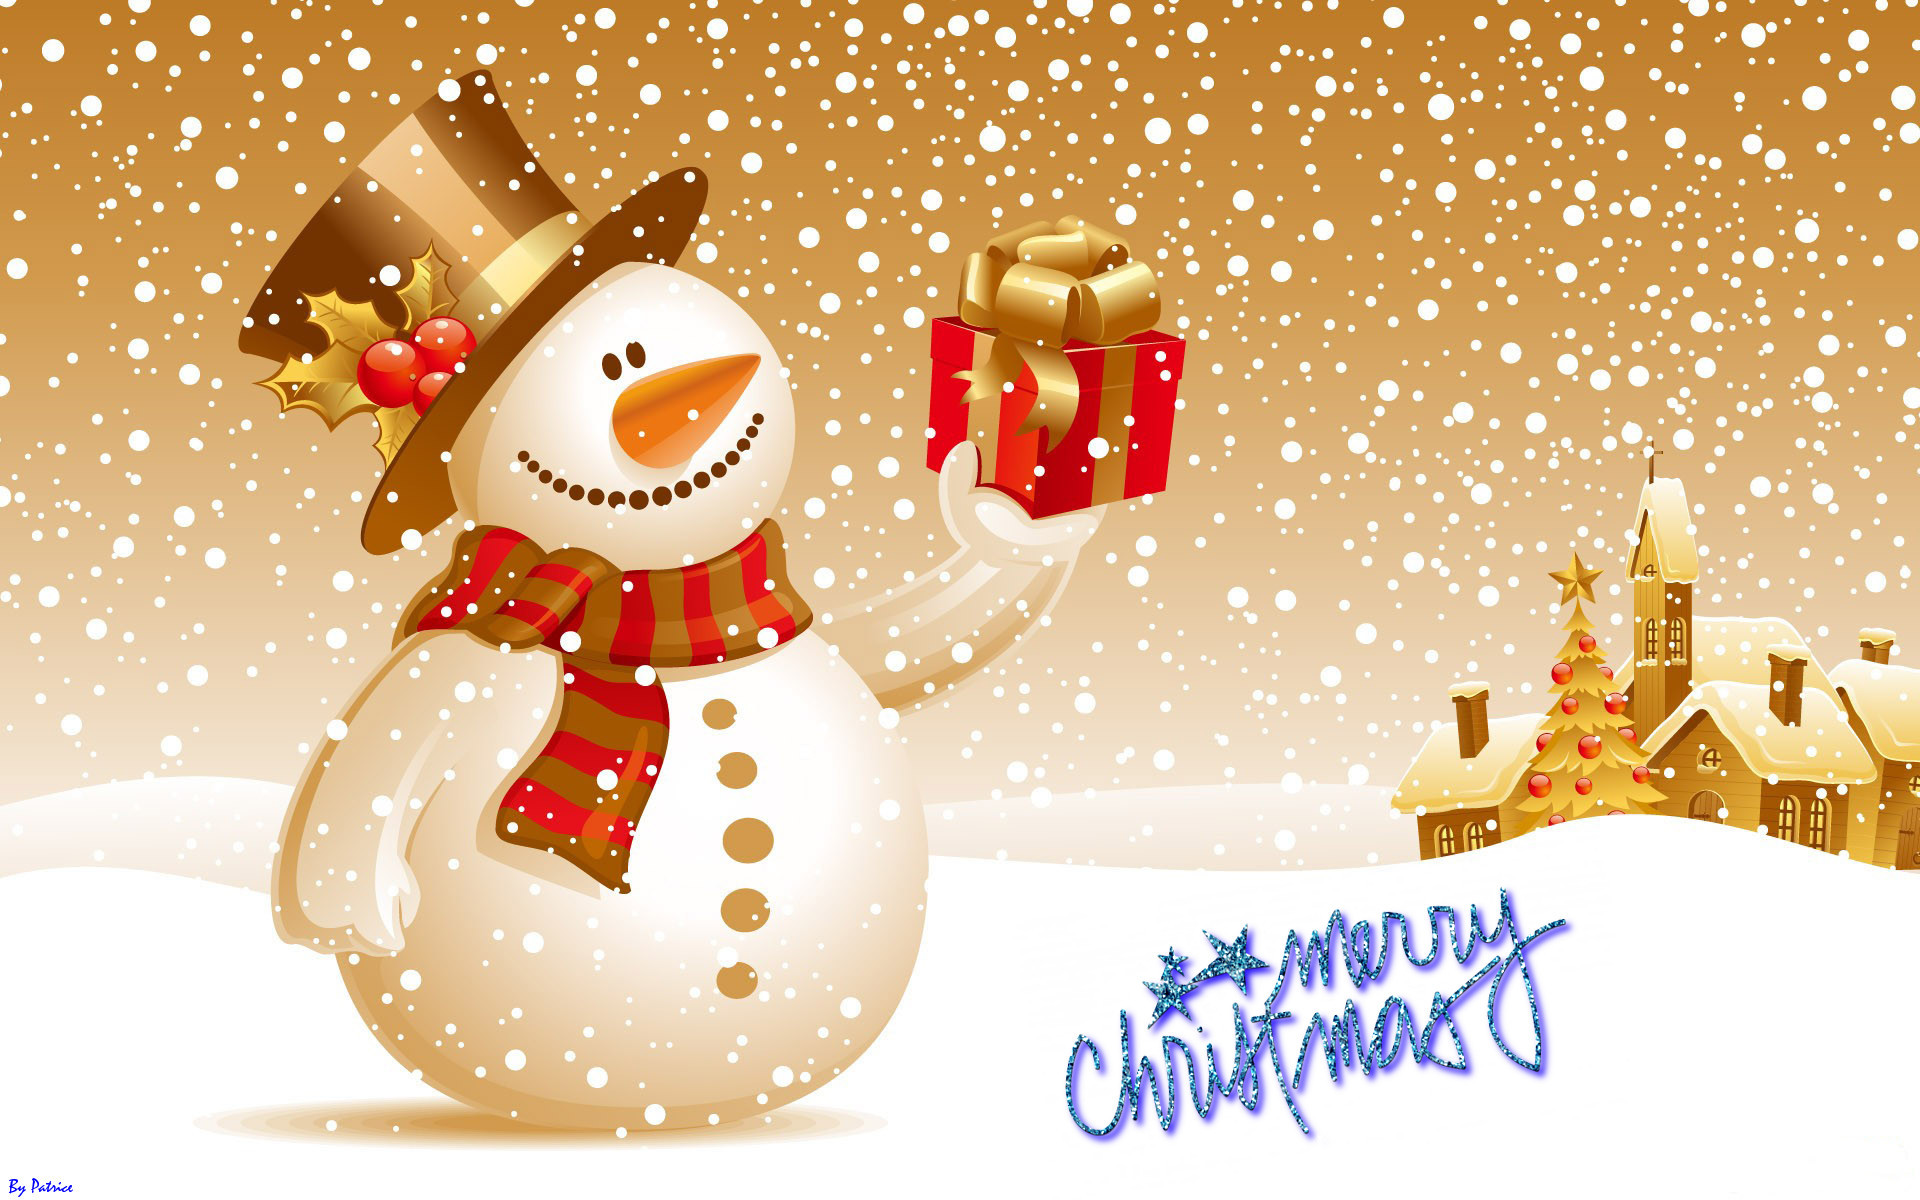 merry christmas national wealth center